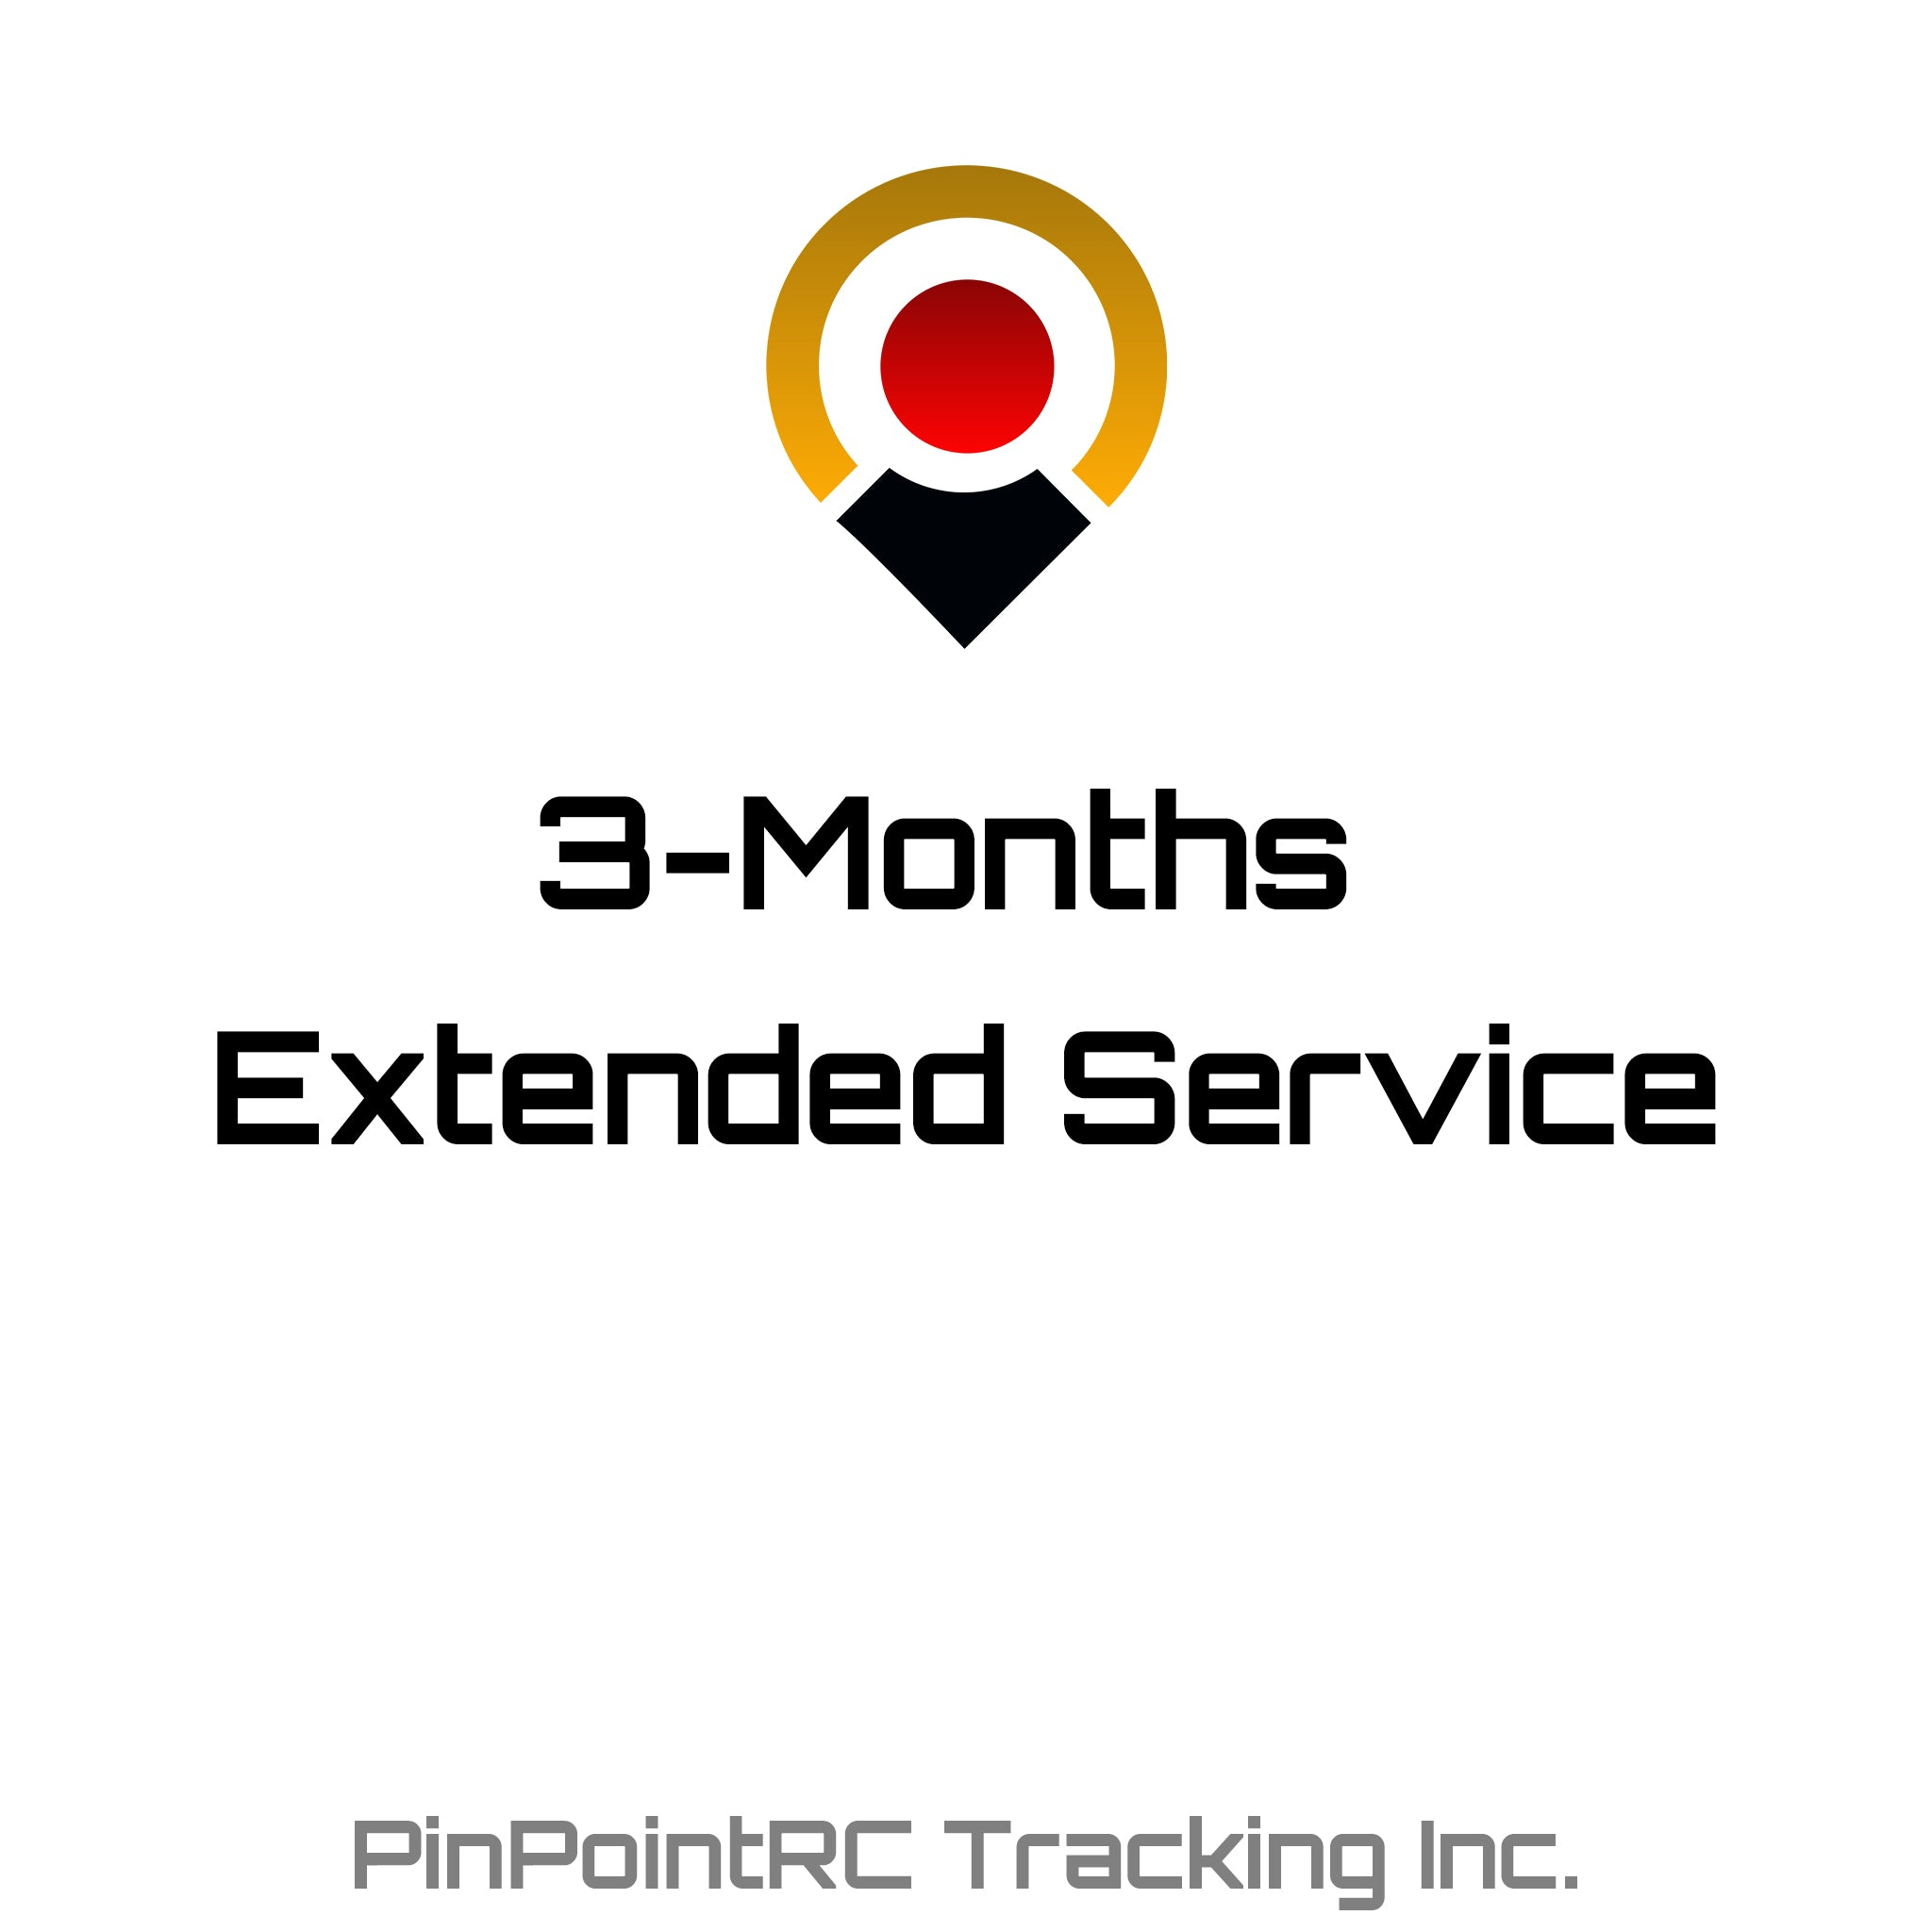 pinpointrc black box 2.0 3-months extended service